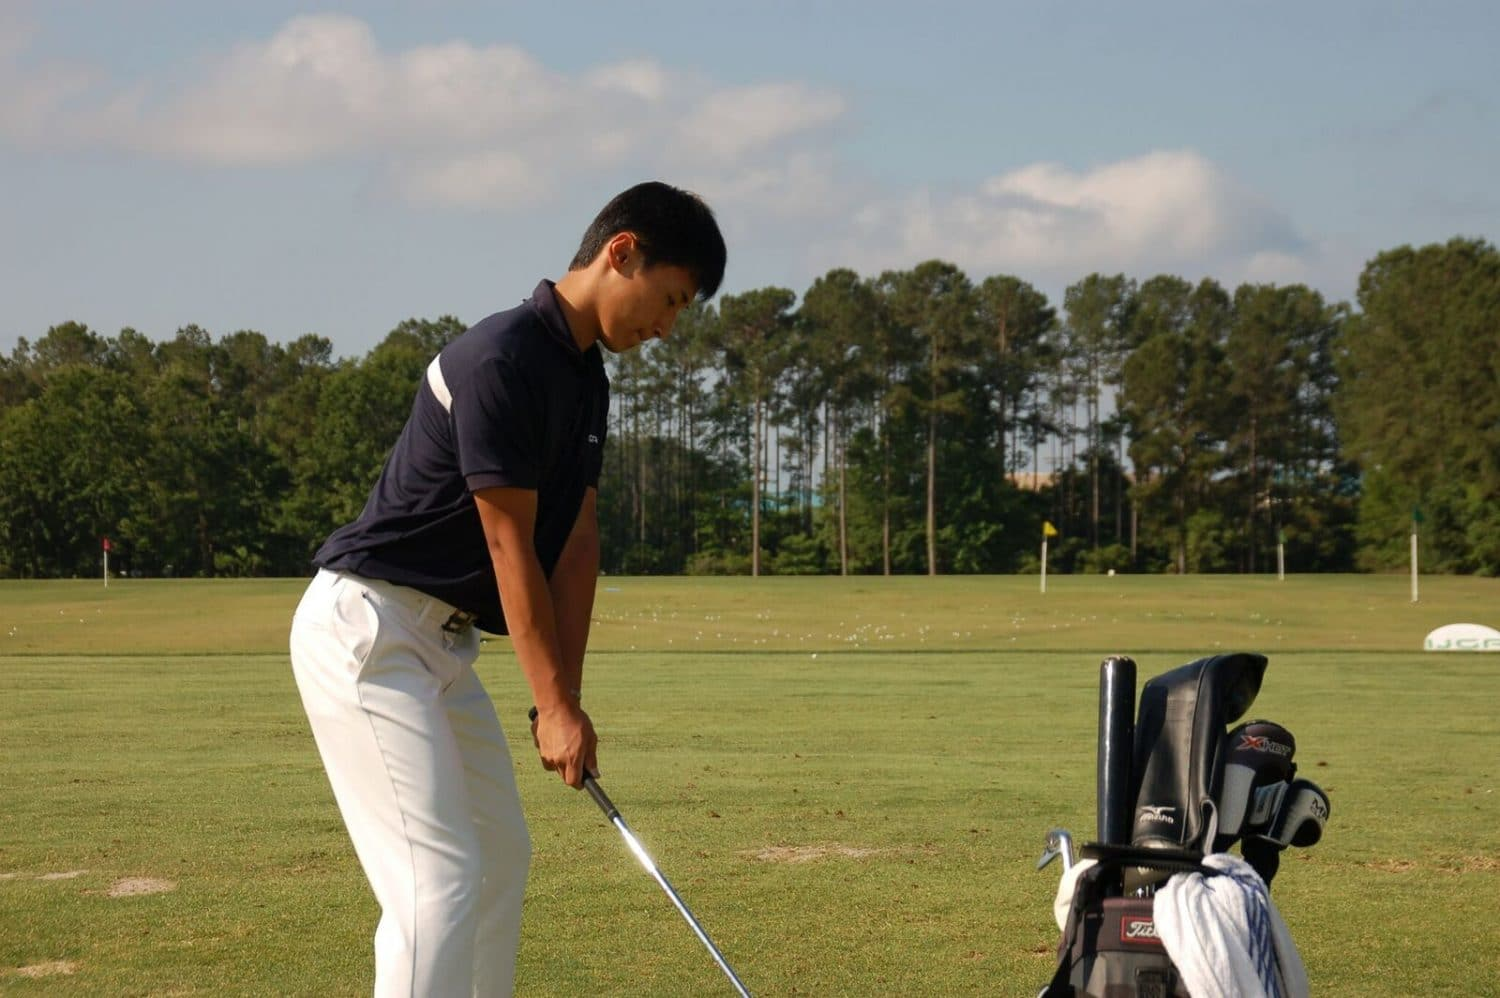 Transferring Learned Skills from the Range to the Course